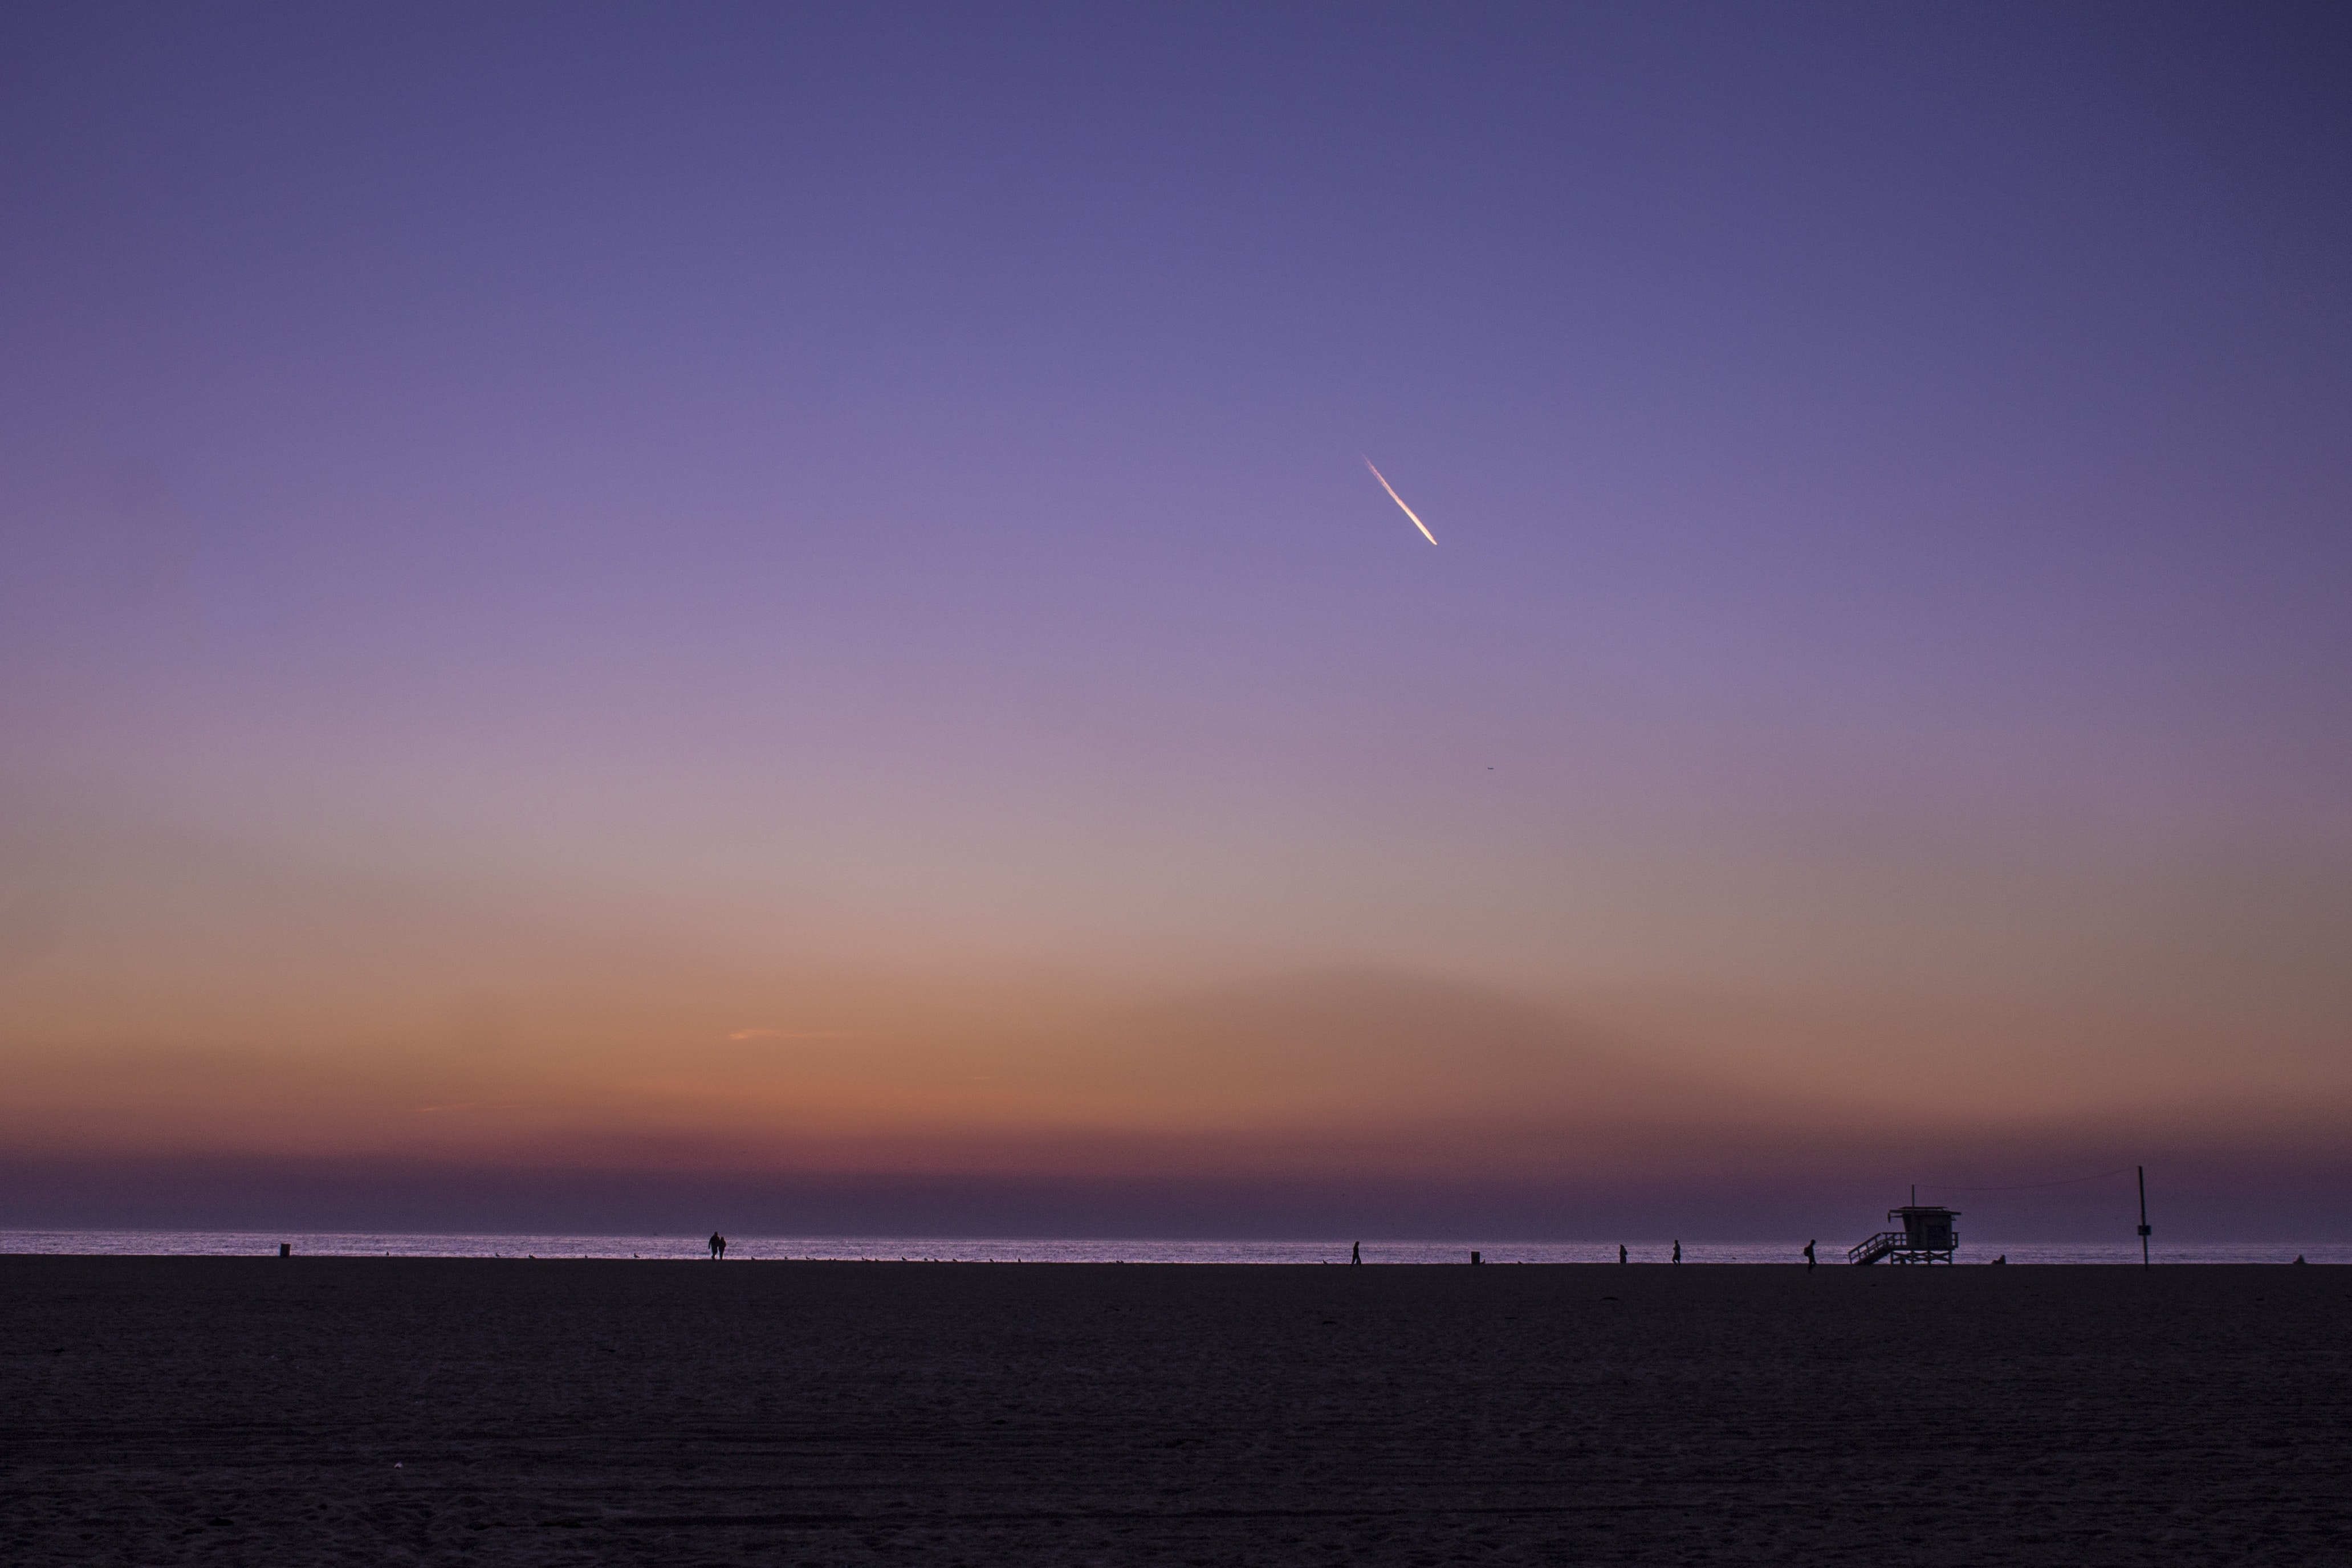 time lapse photography of shooting star